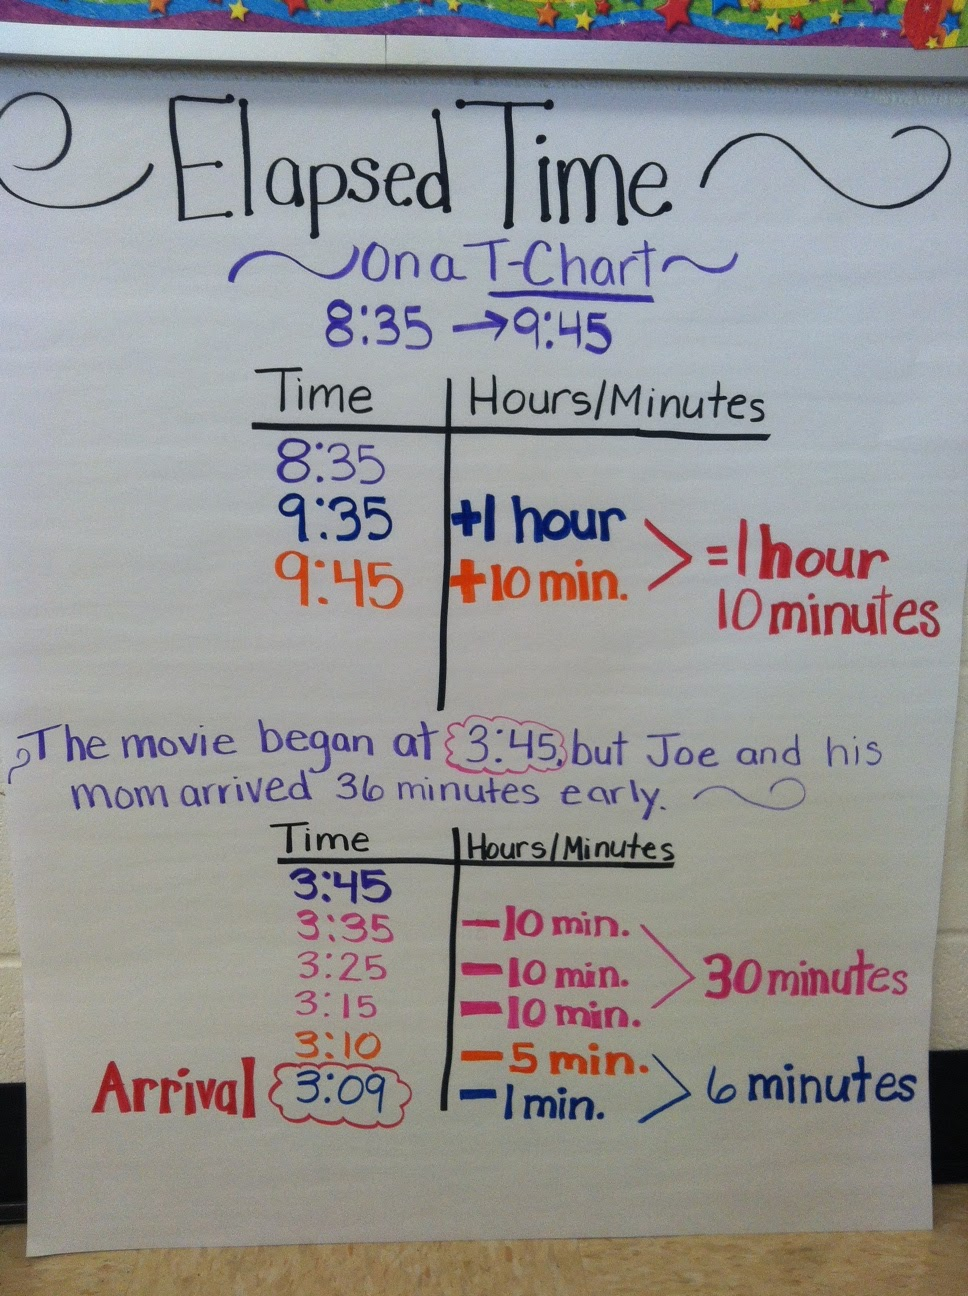 Elapsed Time 3rd | Search Results | Calendar 2015